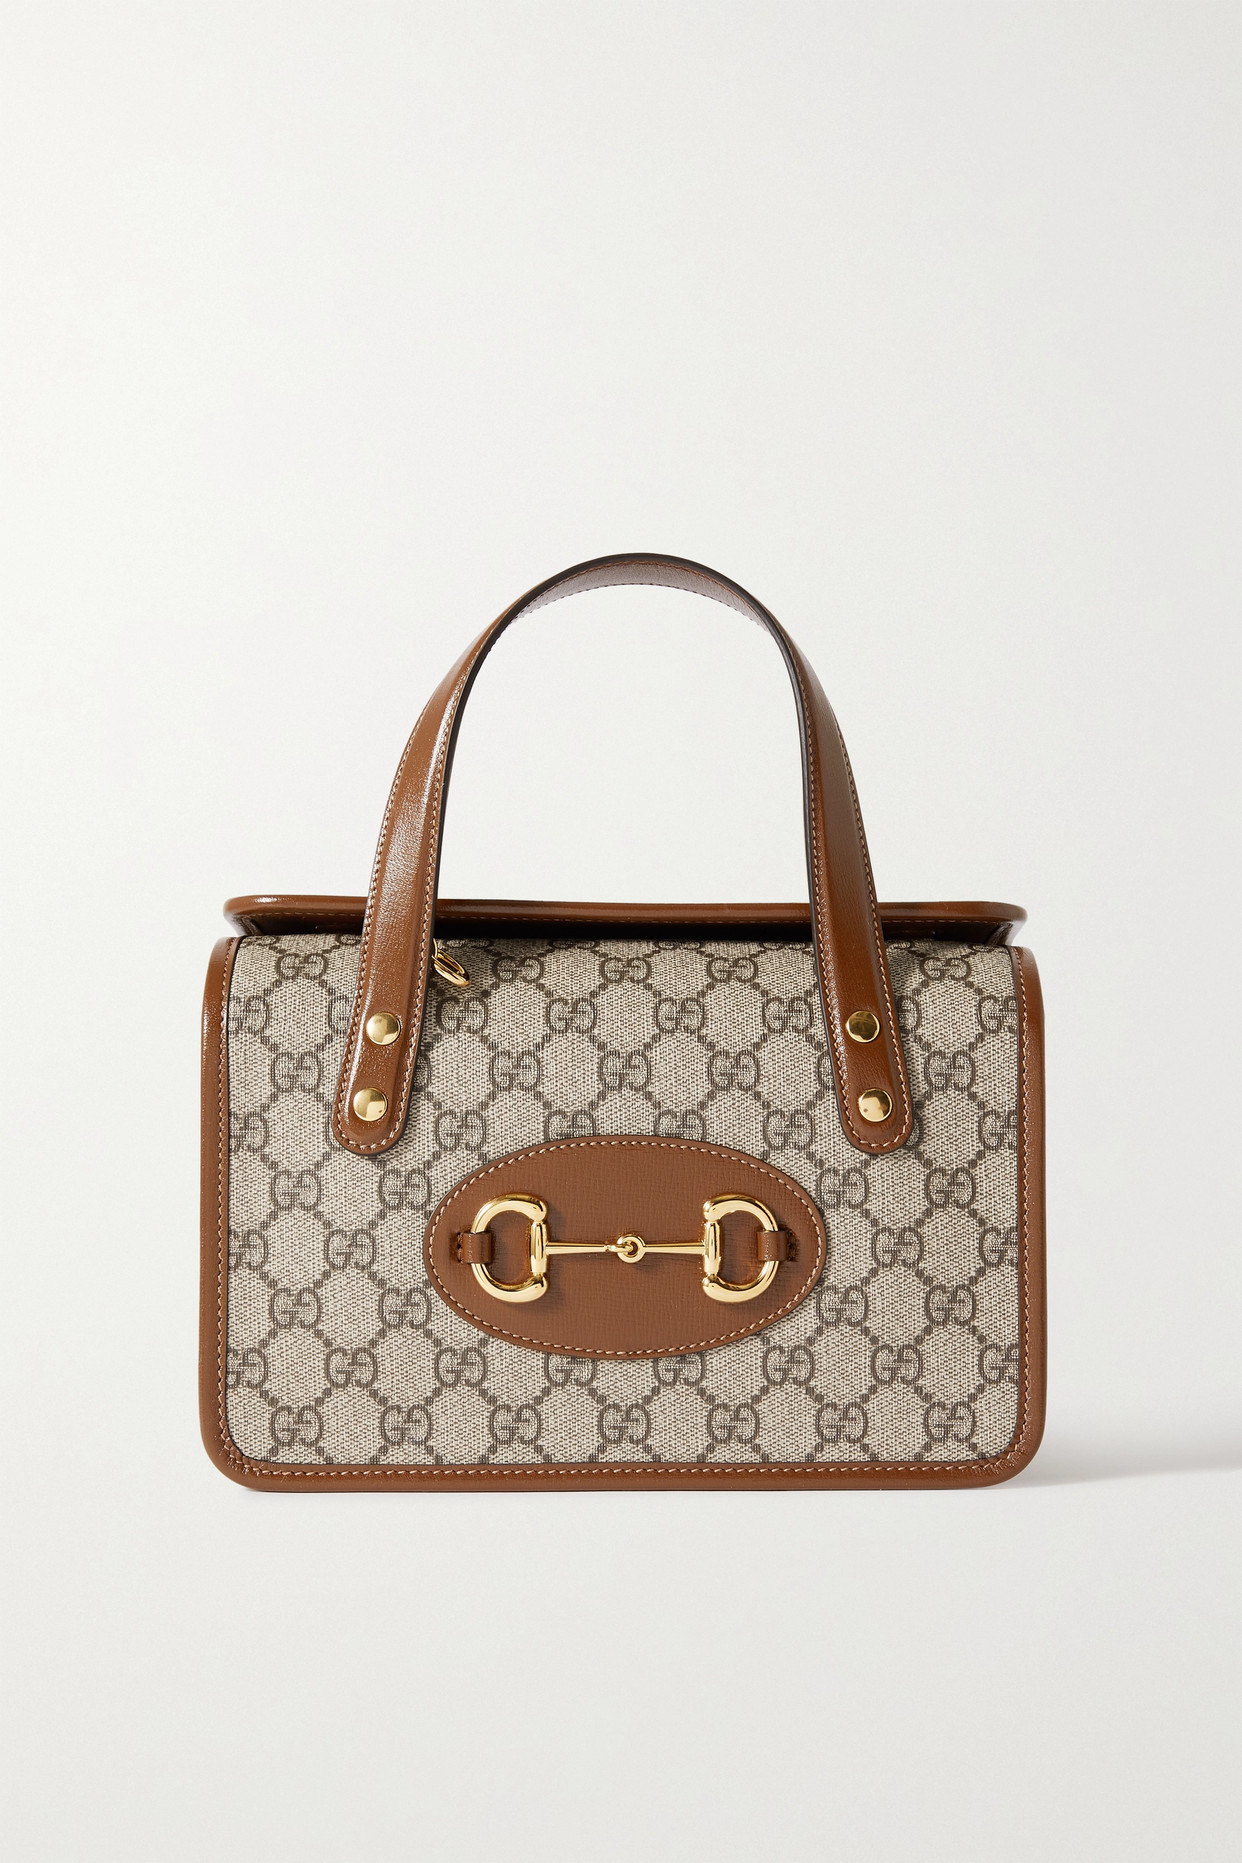 GUCCI - Horsebit 1955 Mini Leather-trimmed Printed Coated-canvas Tote - Brown - one size